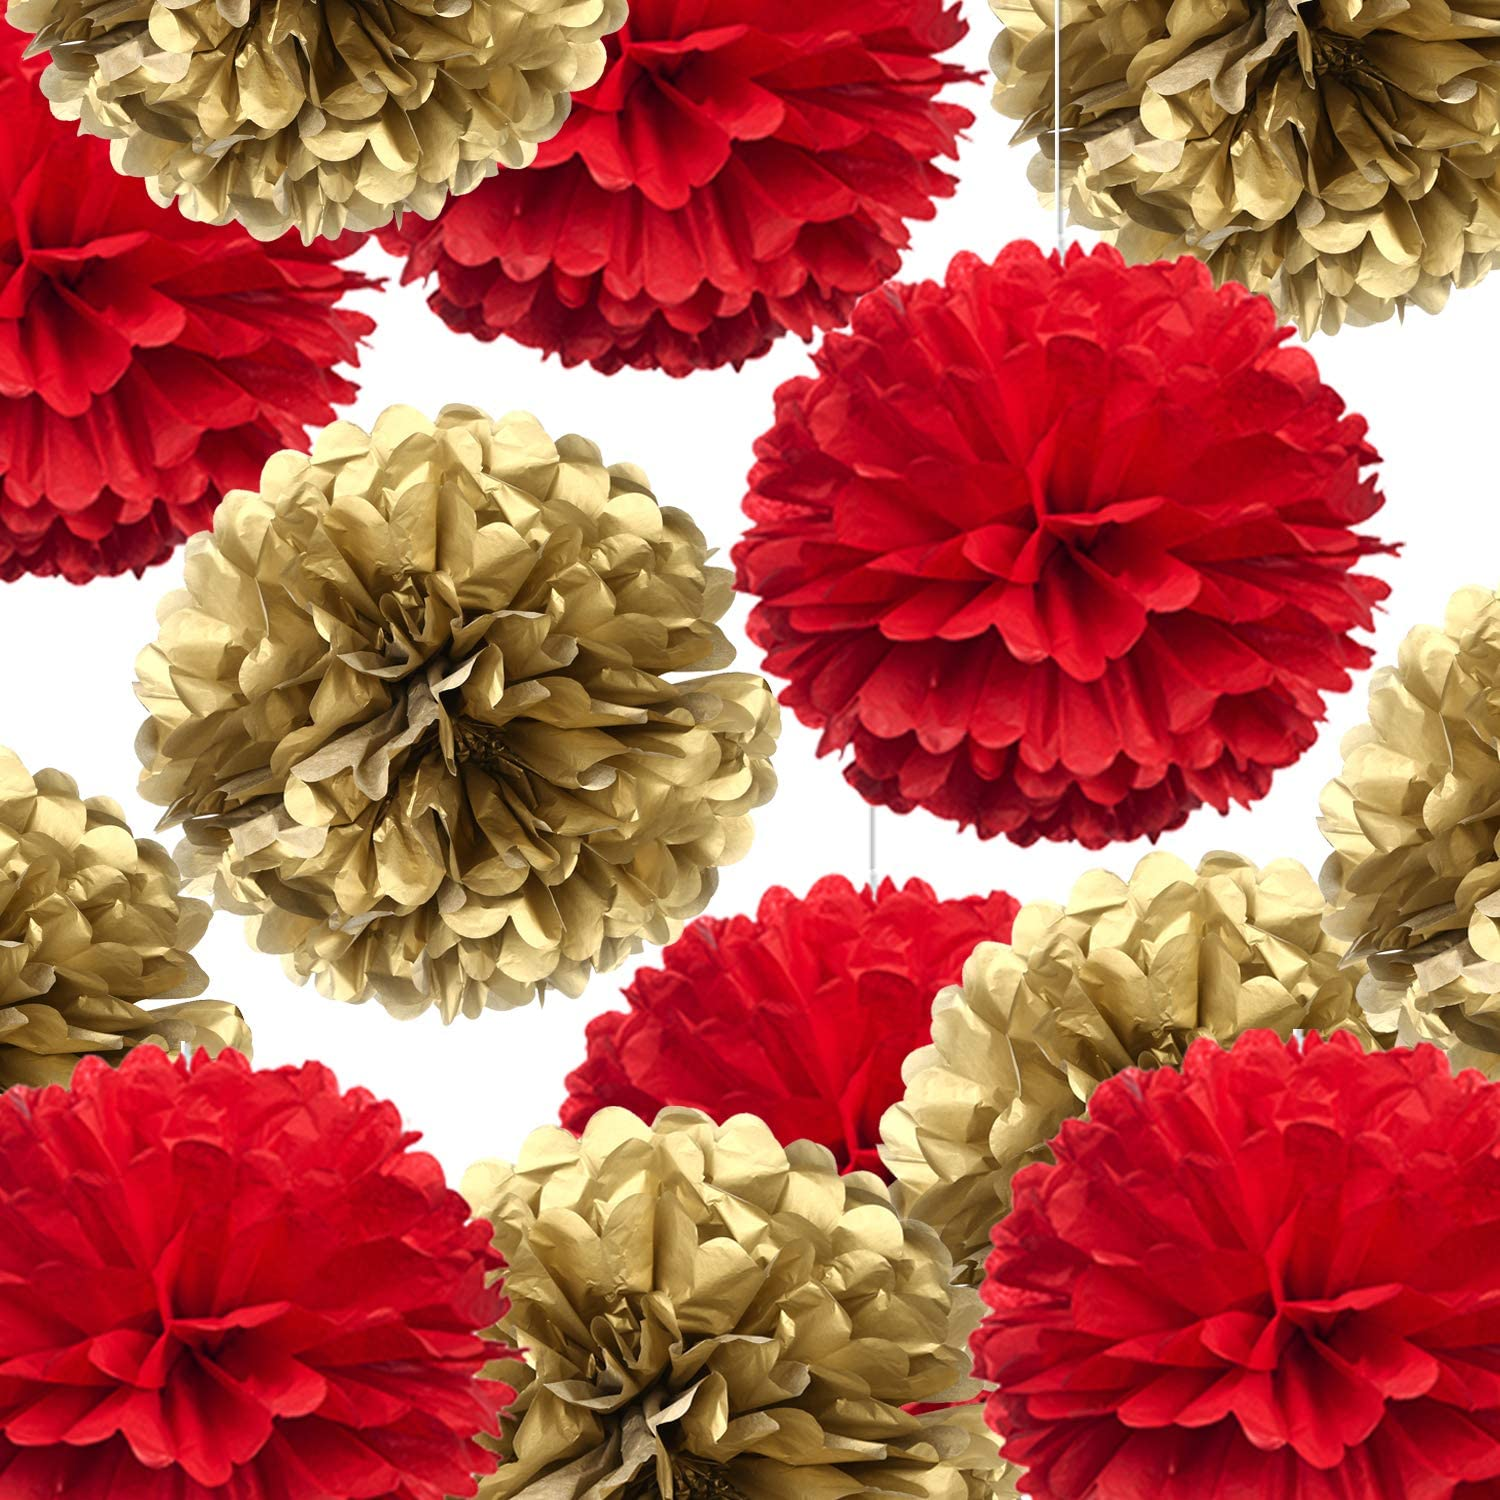 "14"" Red and Gold Tissue Pom Poms Kit DIY Decorative Paper Flowers Ball for Christmas New Years Eve Party Wedding Baby Shower Graduation Birthday Party Home Outdoor Hanging Decorations, Pack of 10"